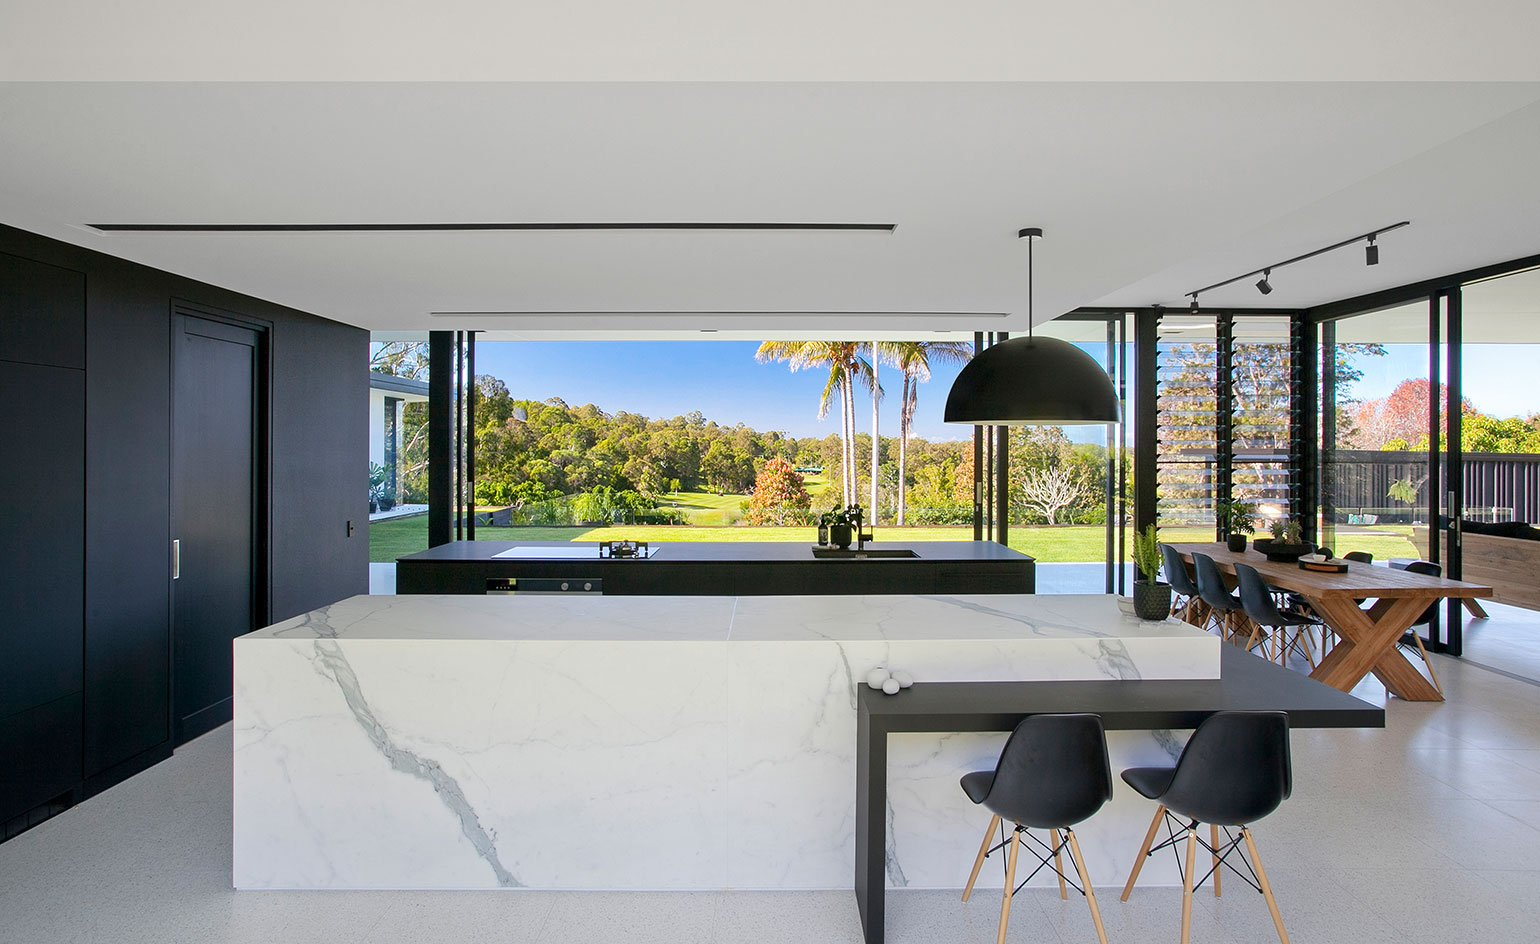 Contemporary house - architect Sarah Waller's Doonan Glass House - kitchen